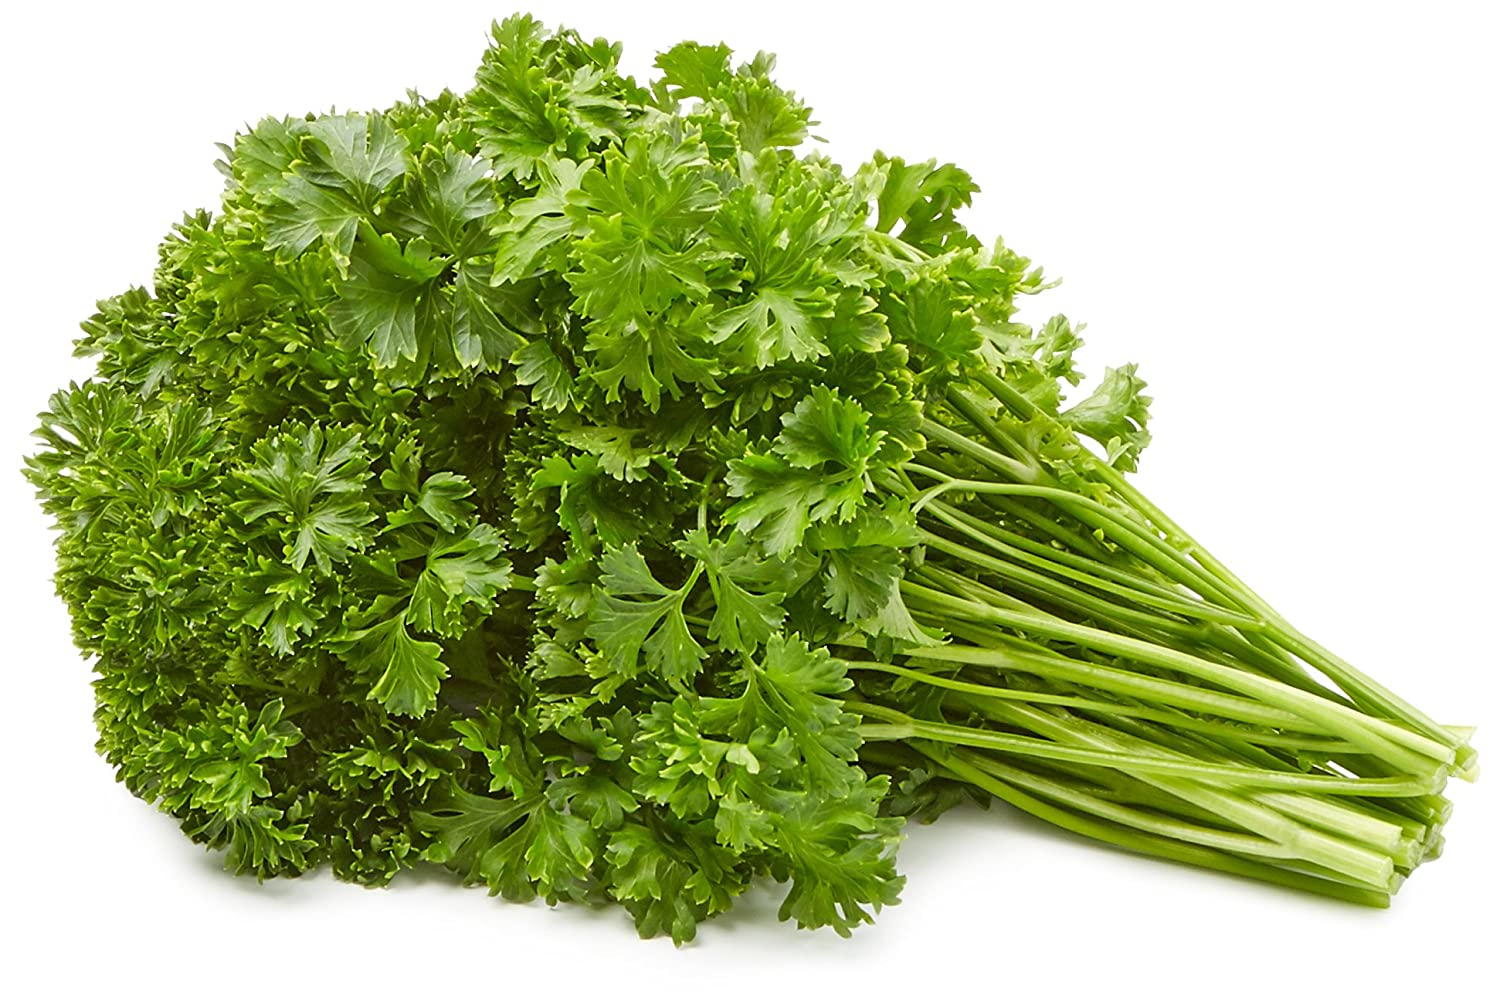 Image result for images of parsley